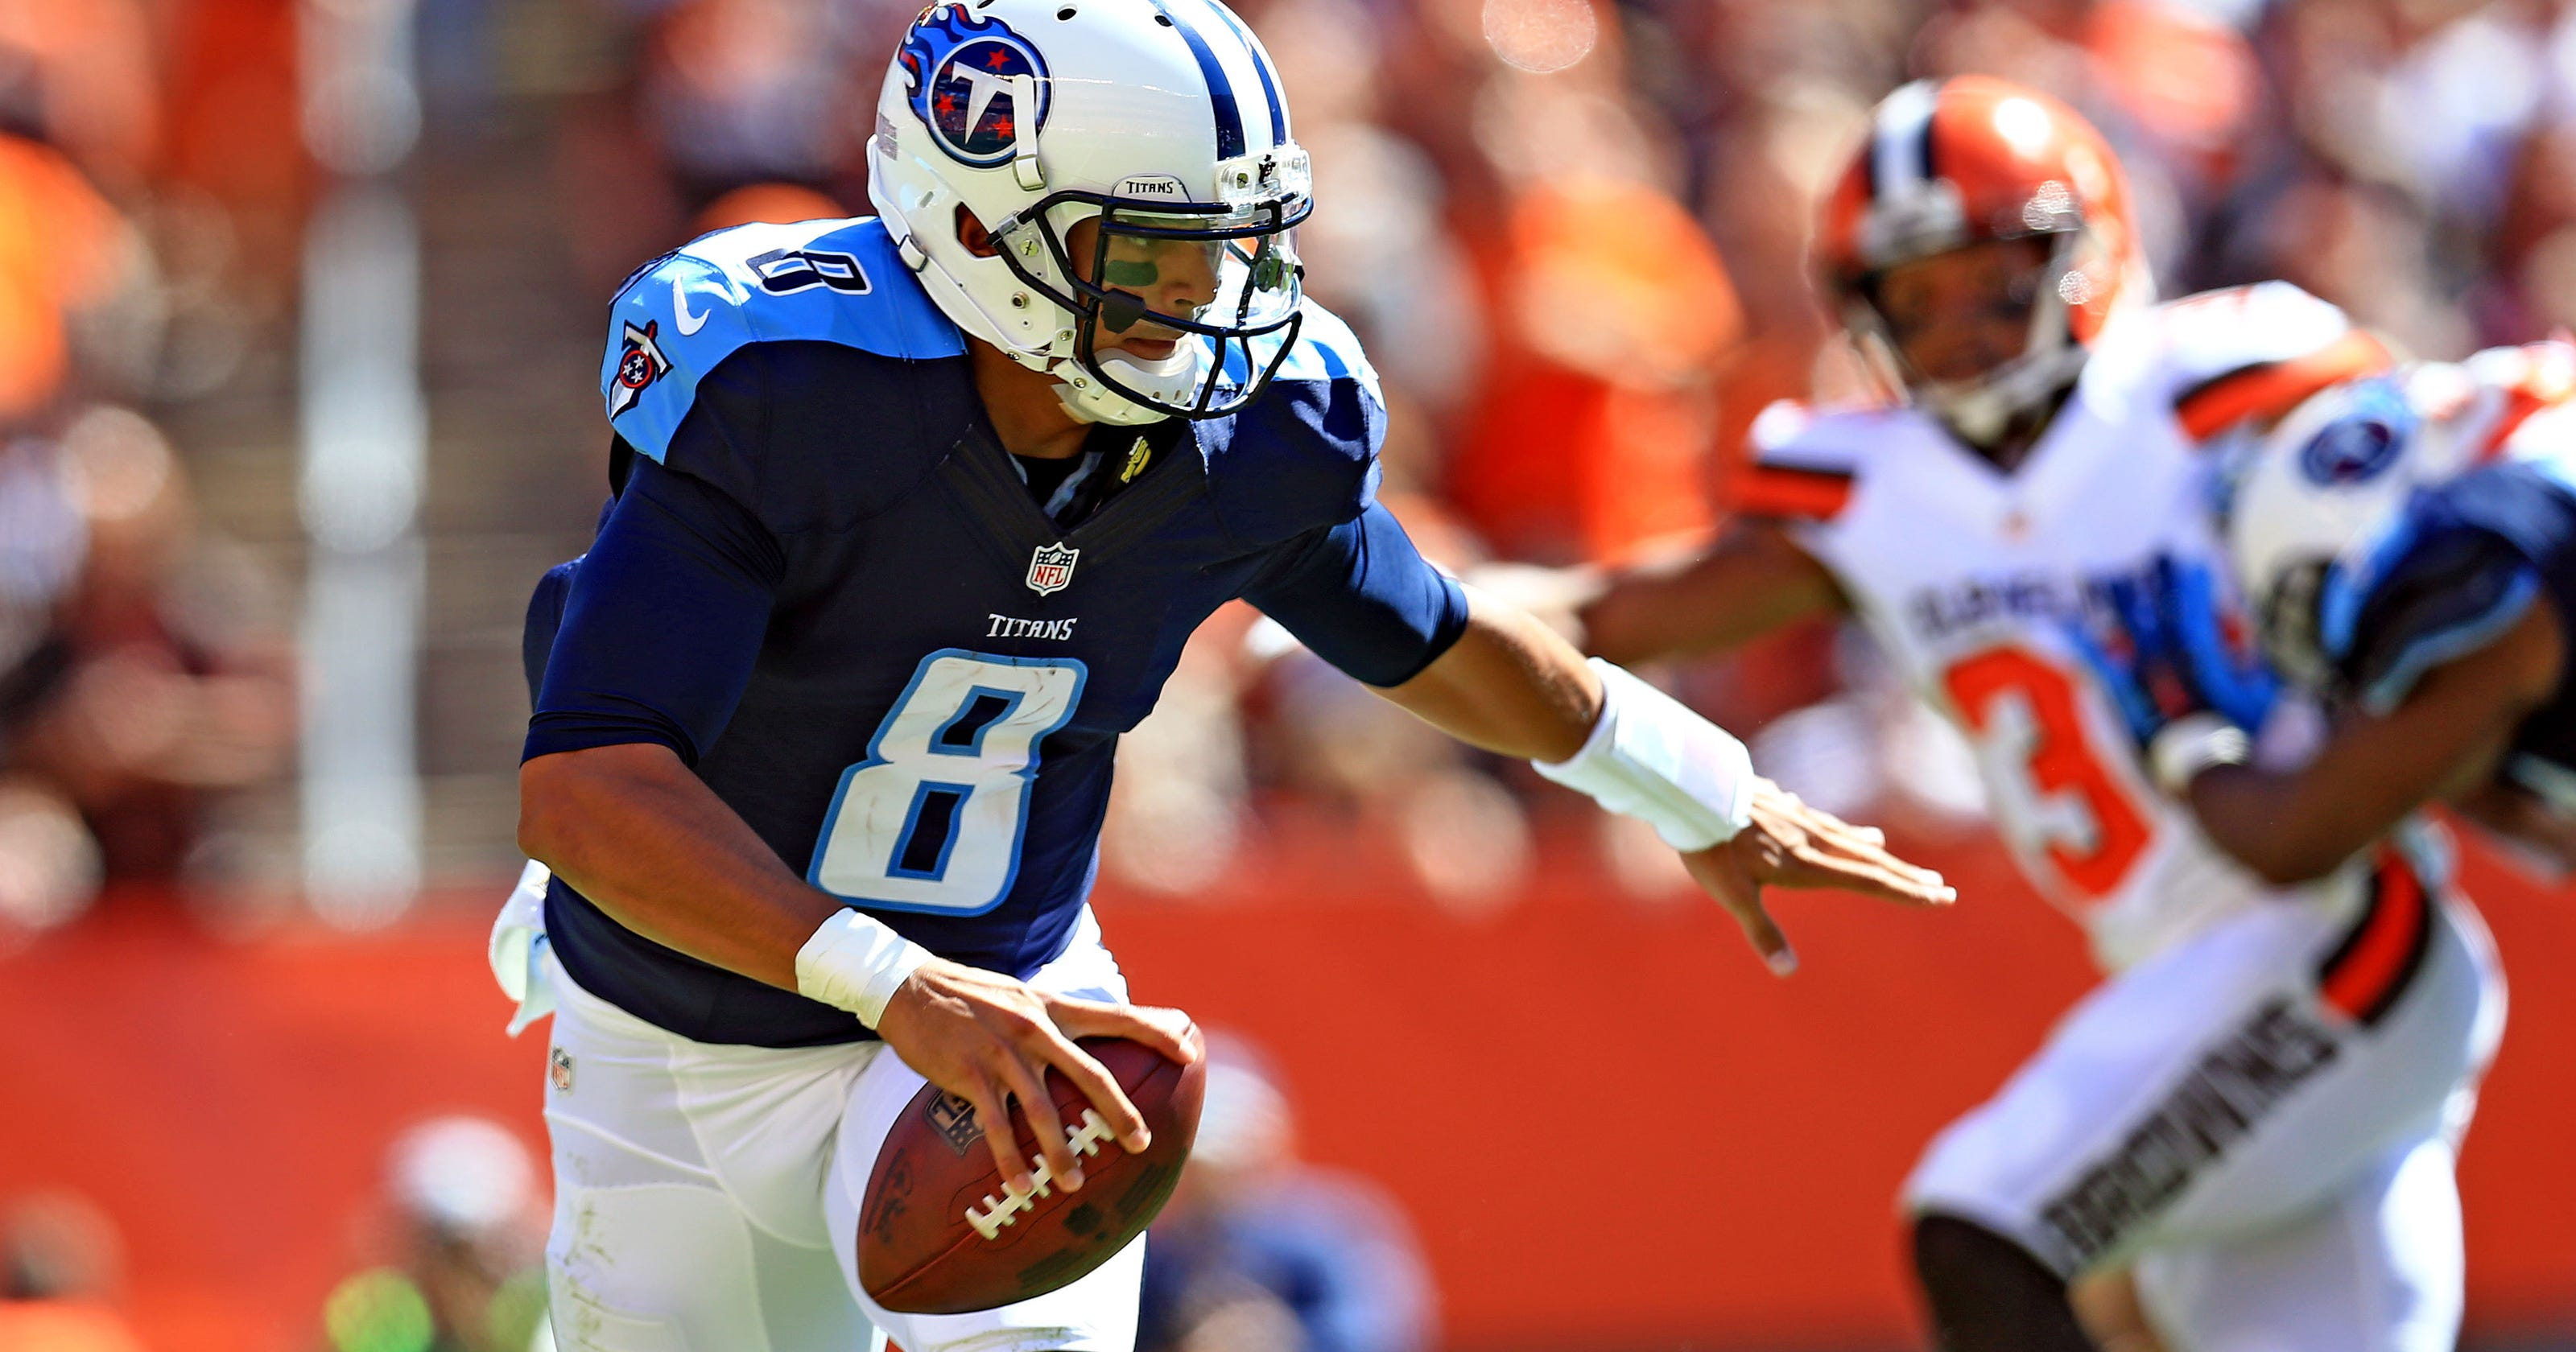 wholesale dealer 7a5ae 8922a Rex Ryan on Marcus Mariota: Kid won't have his way with us